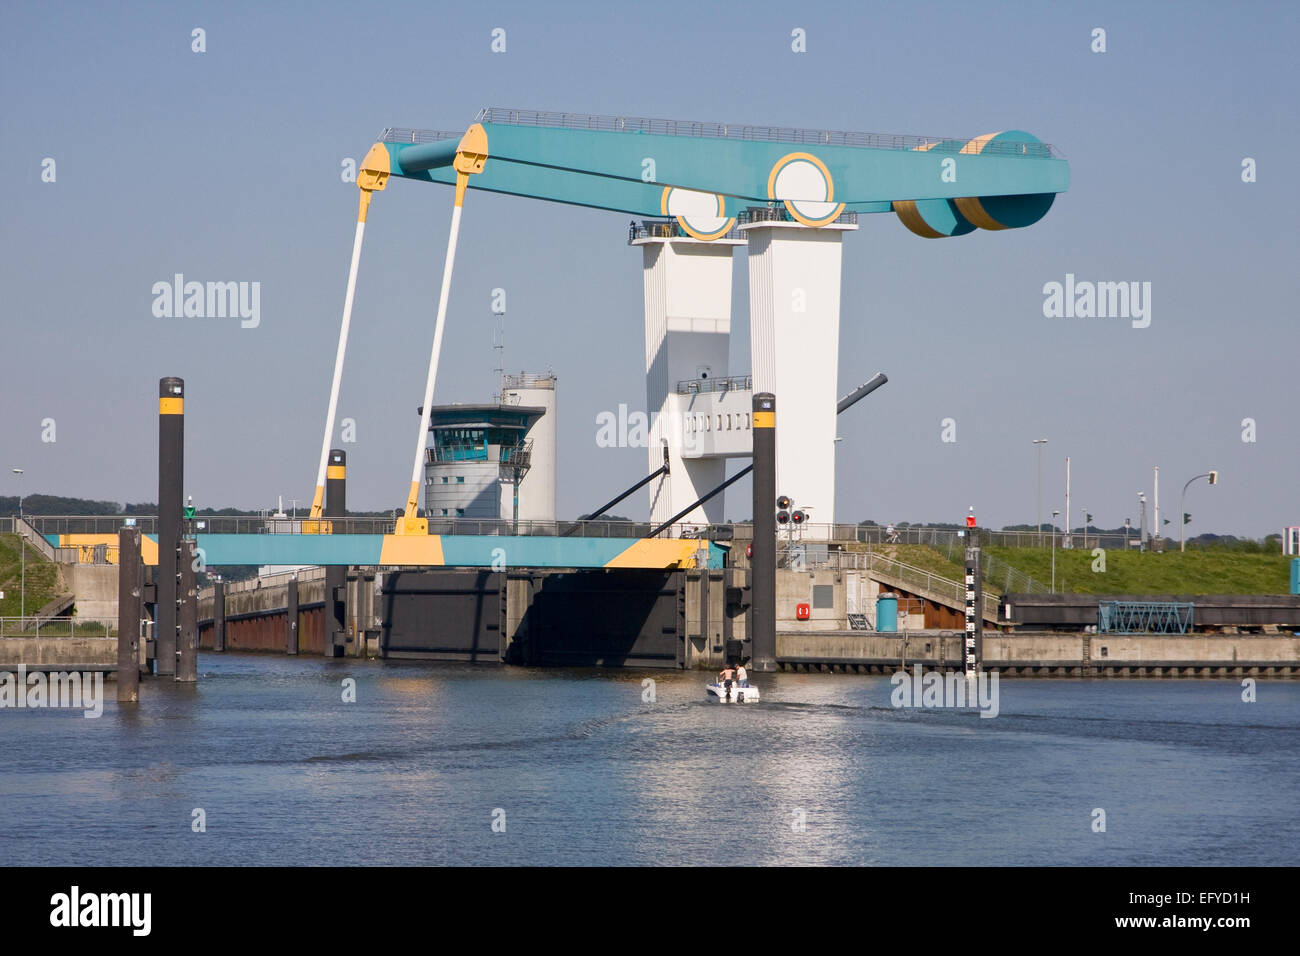 Bascule bridge in Estesperrwerk at the Estemündung, Cranz, Altes Land, Hamburg, Lower Saxony, Germany, Europe - Stock Image